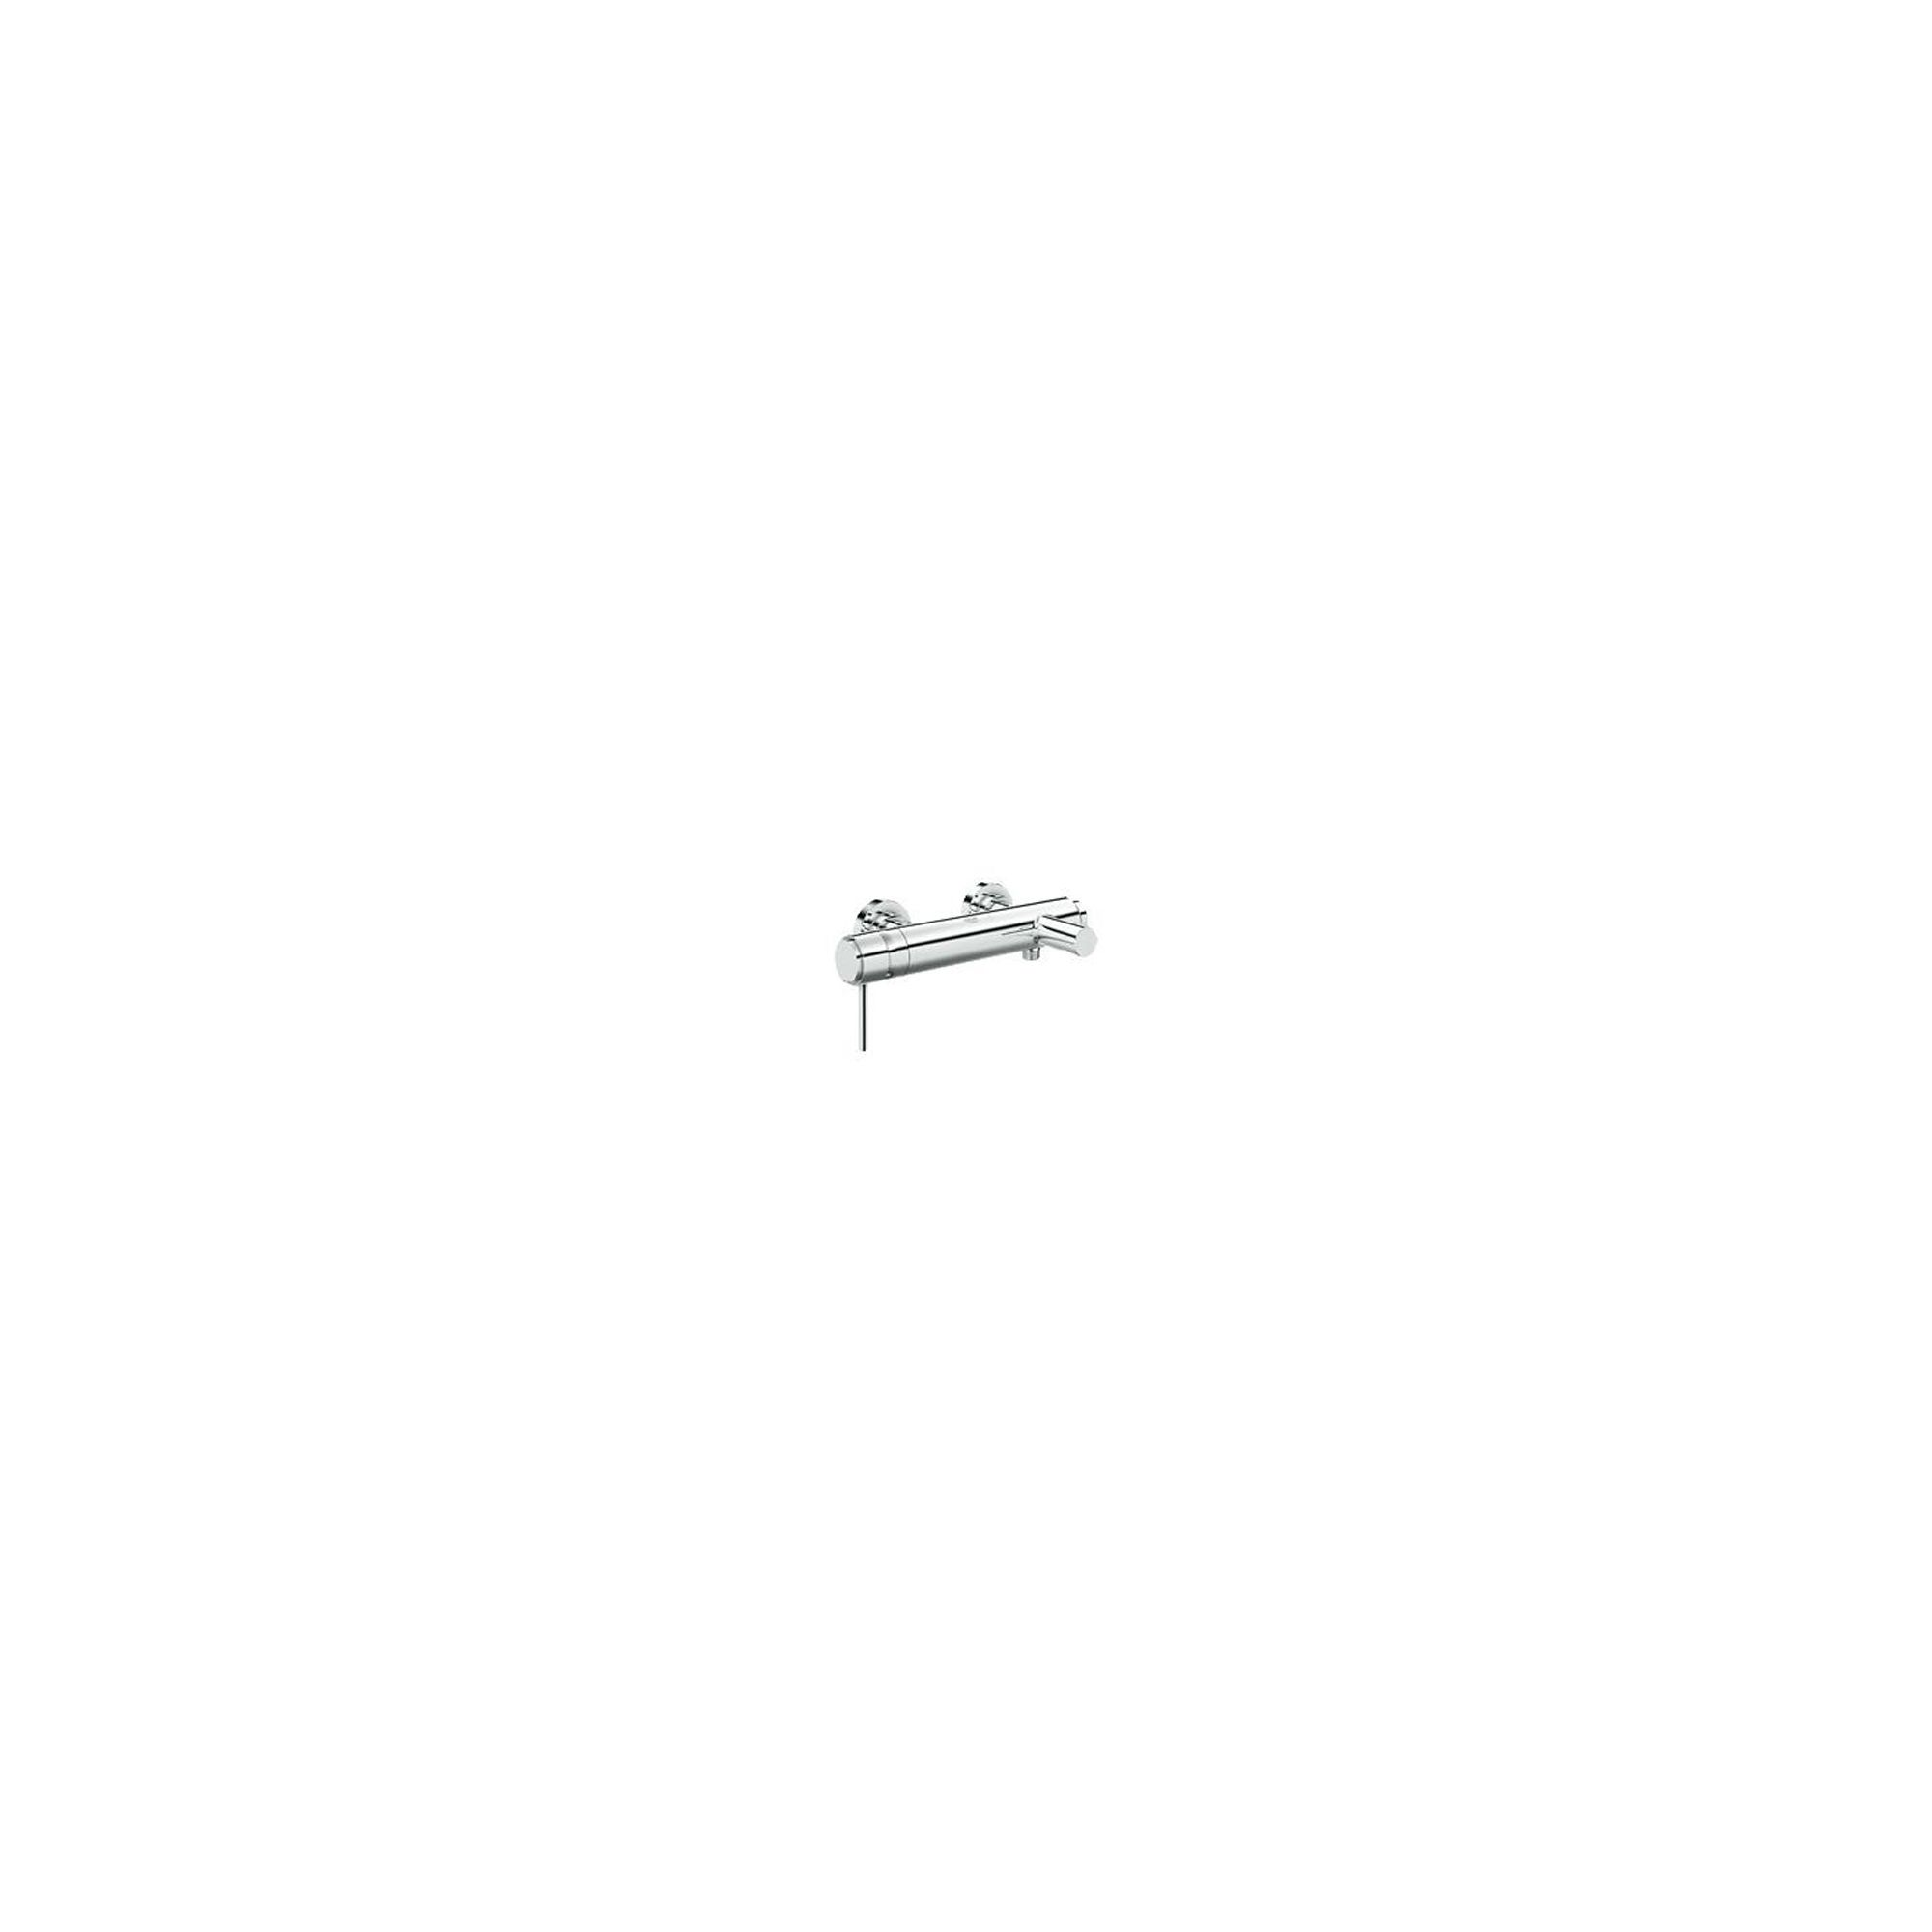 Grohe Atrio One Bath Shower Mixer Tap, Wall Mounted, Chrome at Tesco Direct